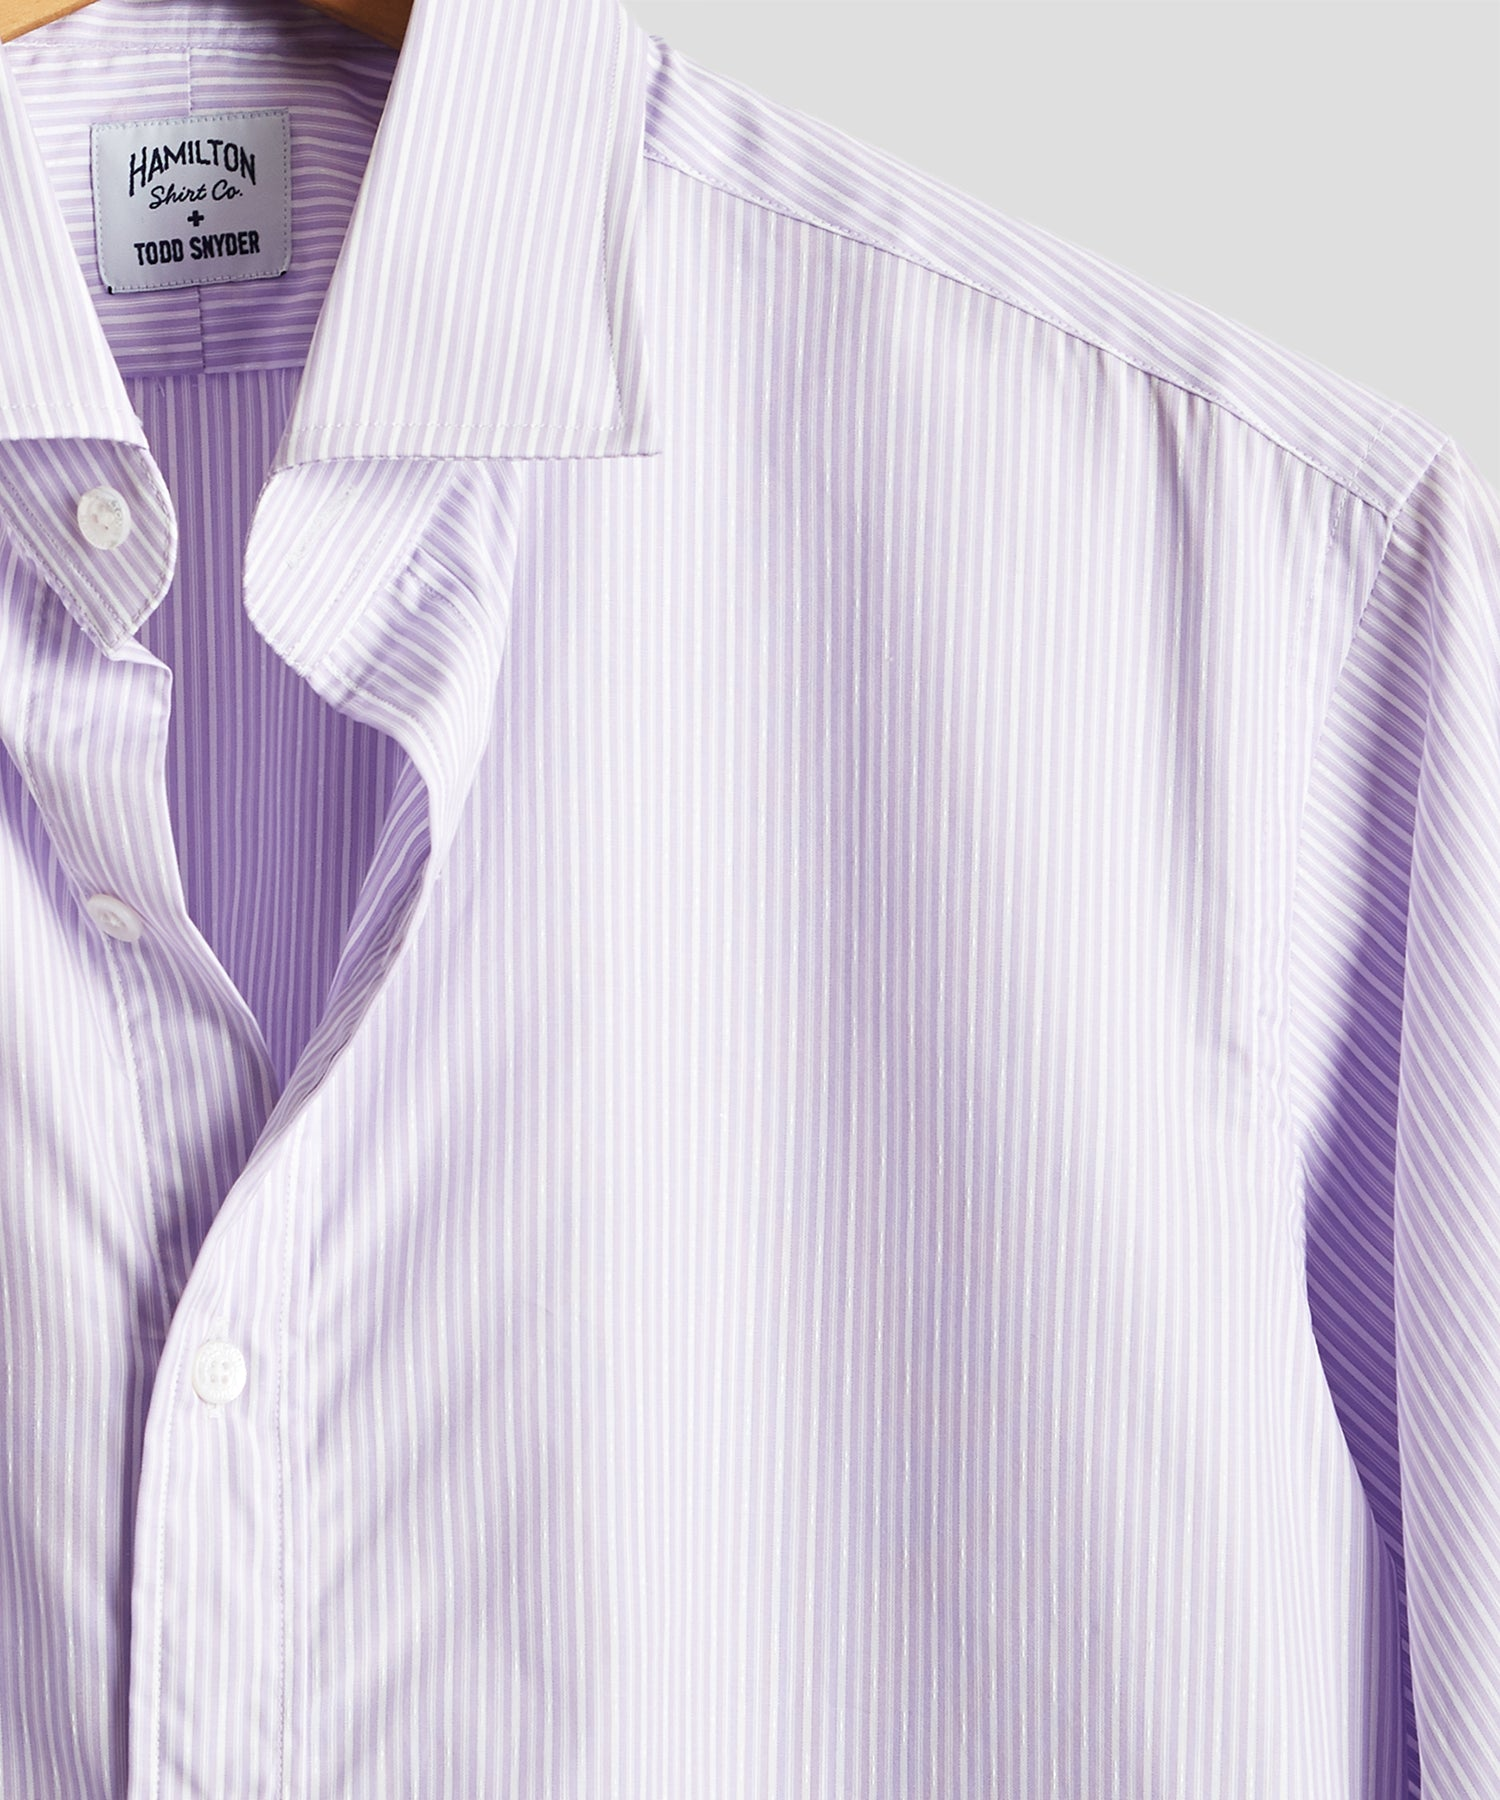 Made in USA Hamilton + Todd Snyder Lavender Stripe Dress Shirt